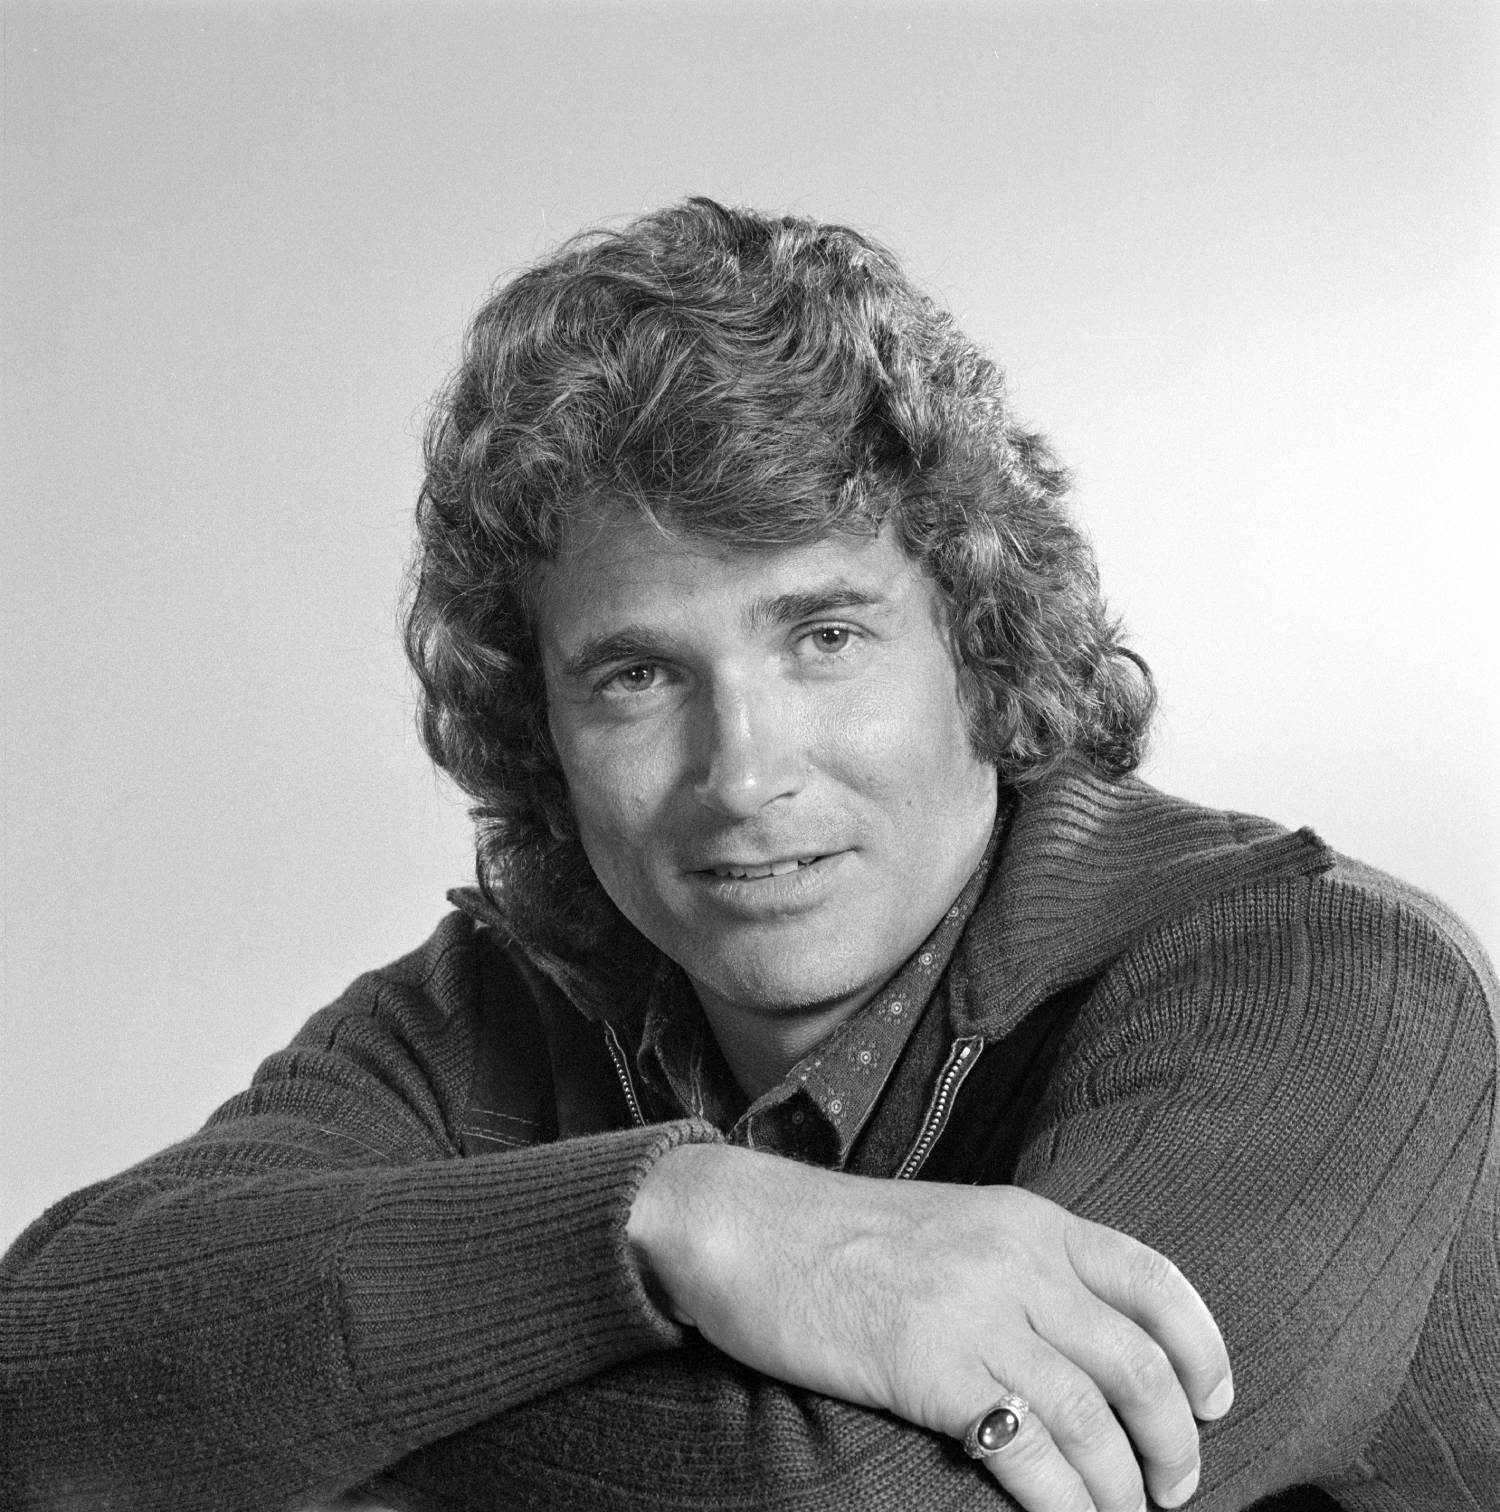 """LOS ANGELES - MARCH 26: Michael Landon photographed for """"American Jr. Miss."""" Image dated March 26, 1974."""